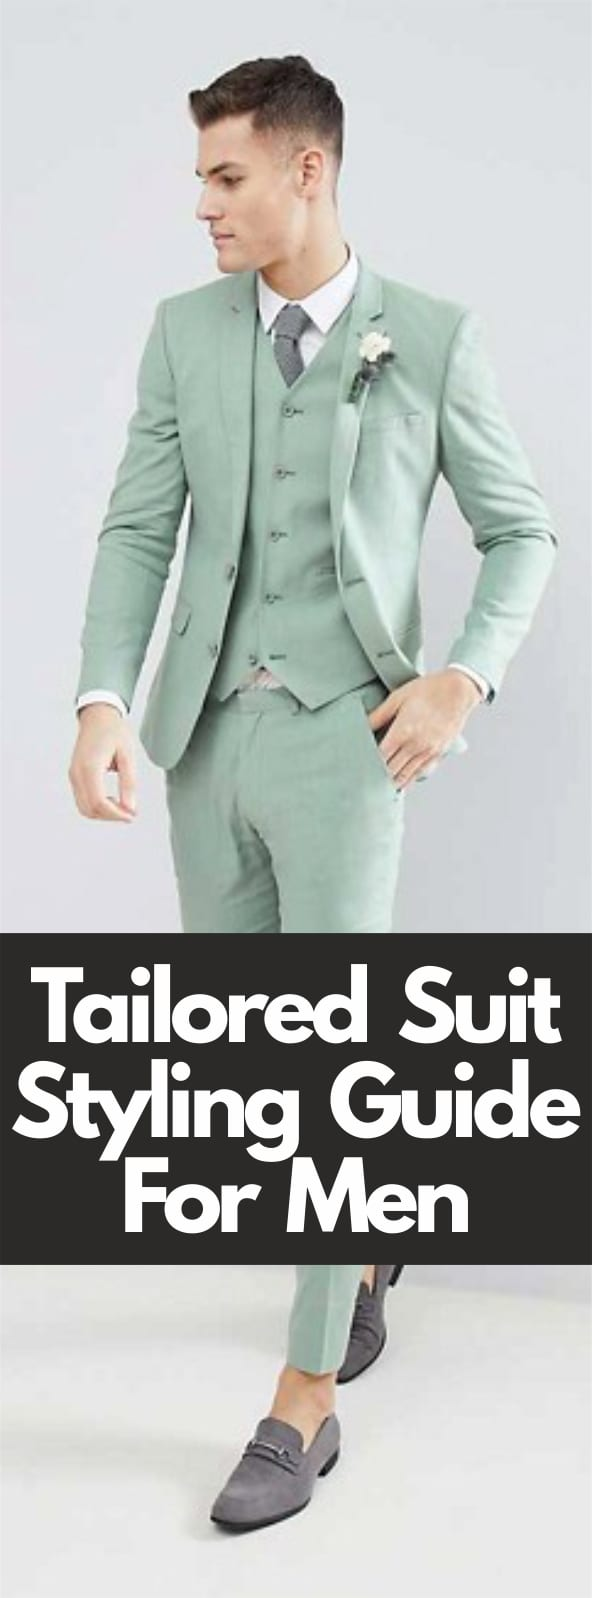 Tailored Suit Styling Guide For Men